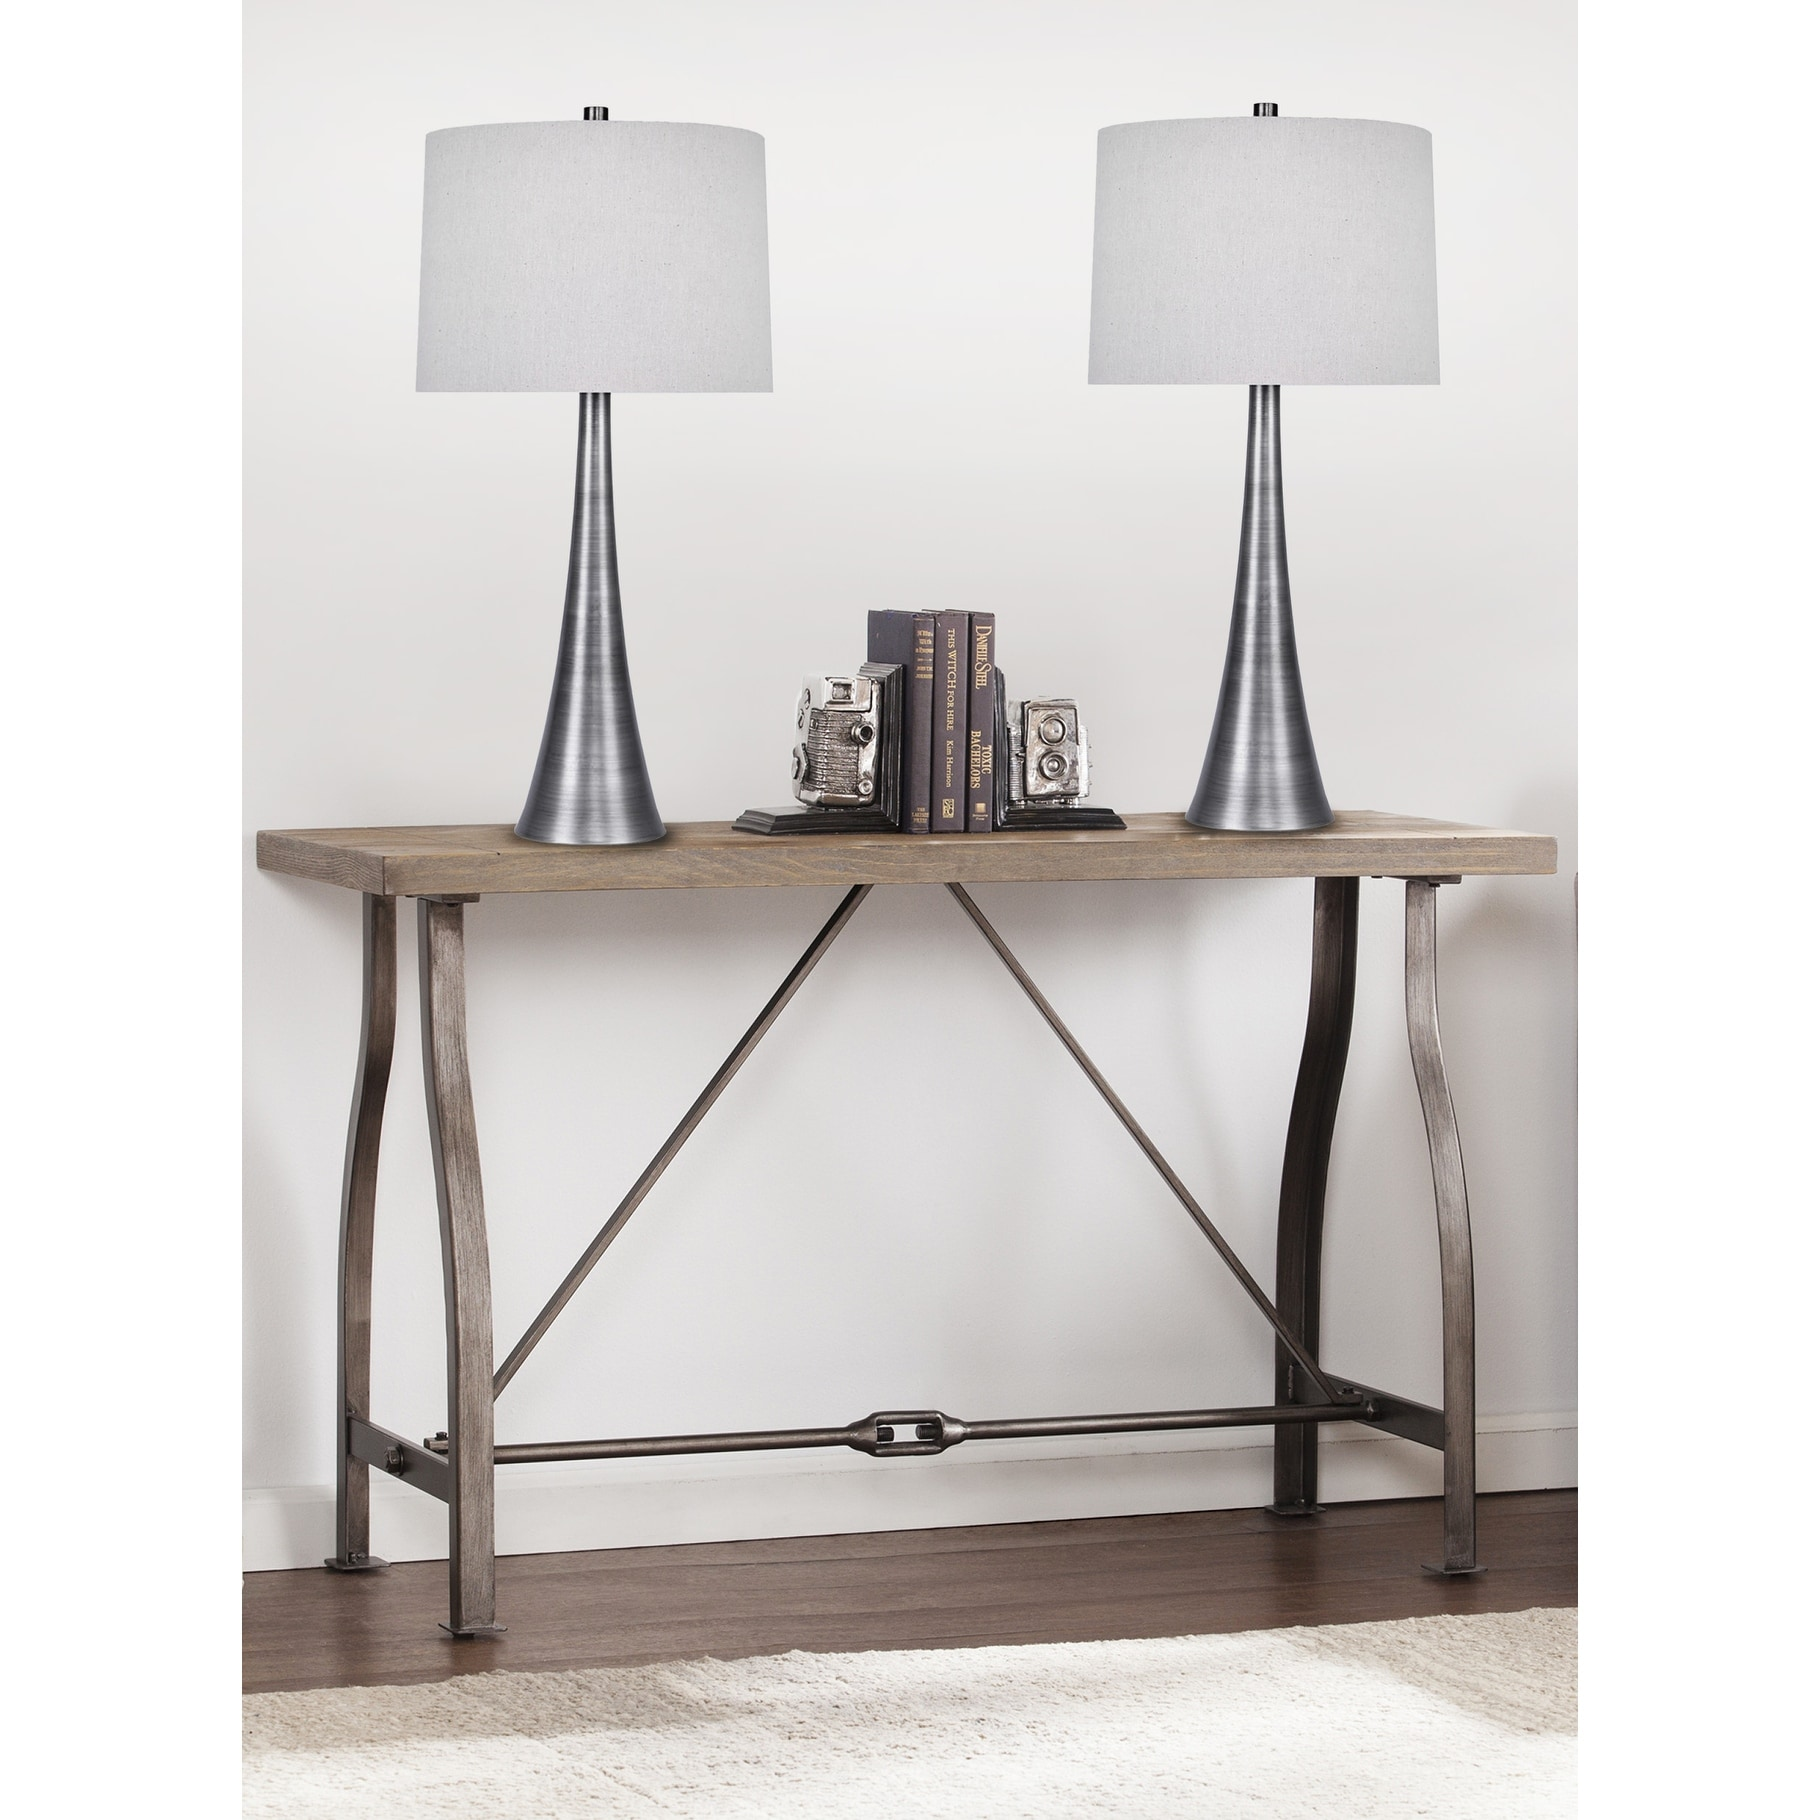 29 5 Metal Table Lamp Set With Tapered Curve Design And Off White Linen Drum Shades Overstock 29167654